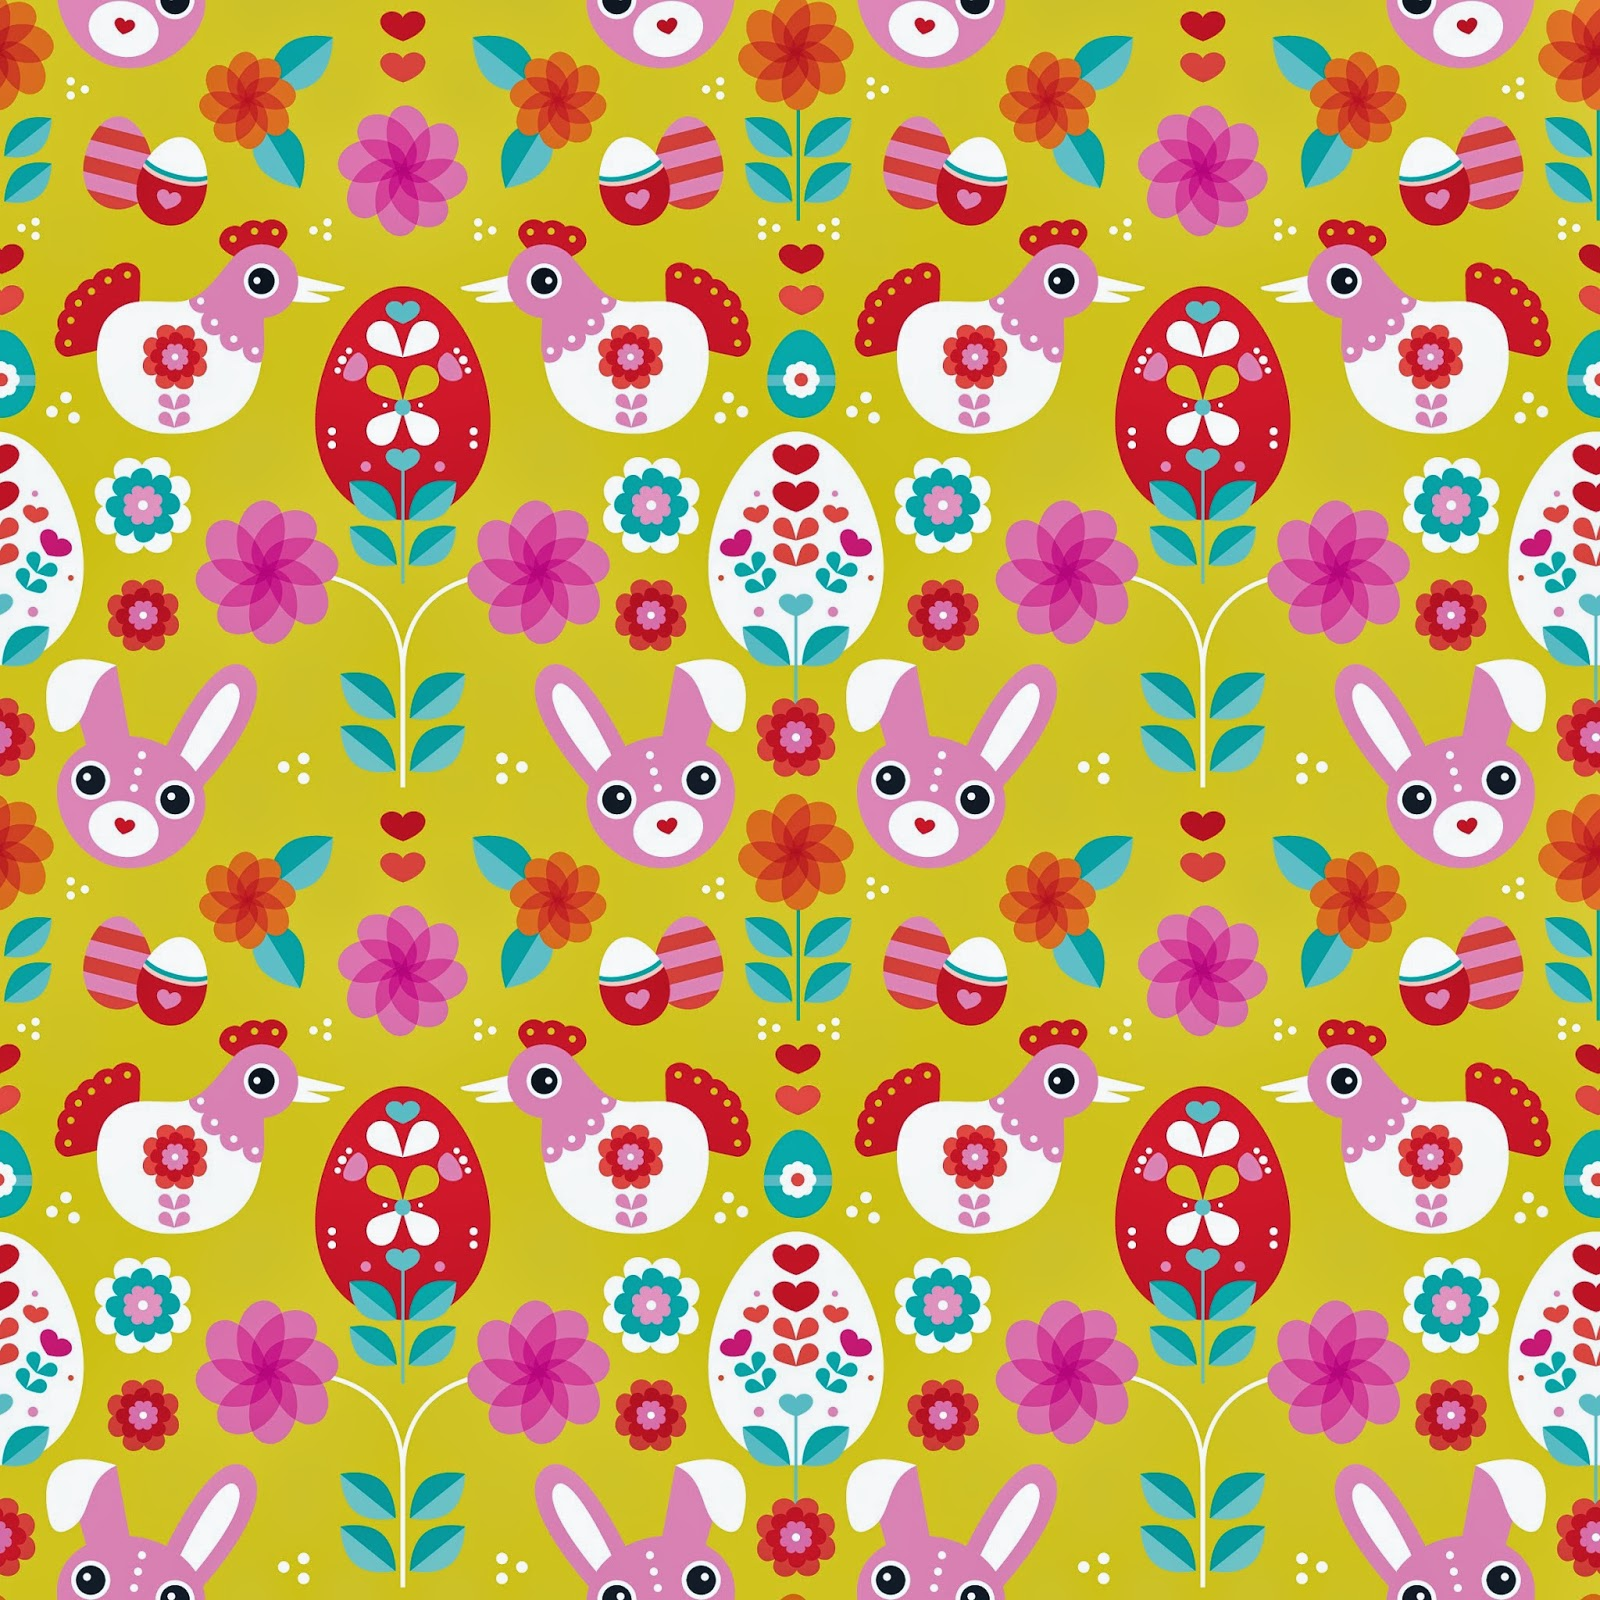 Printable bunny wrapping paper craftbnb free printable wrapping paper negle Images